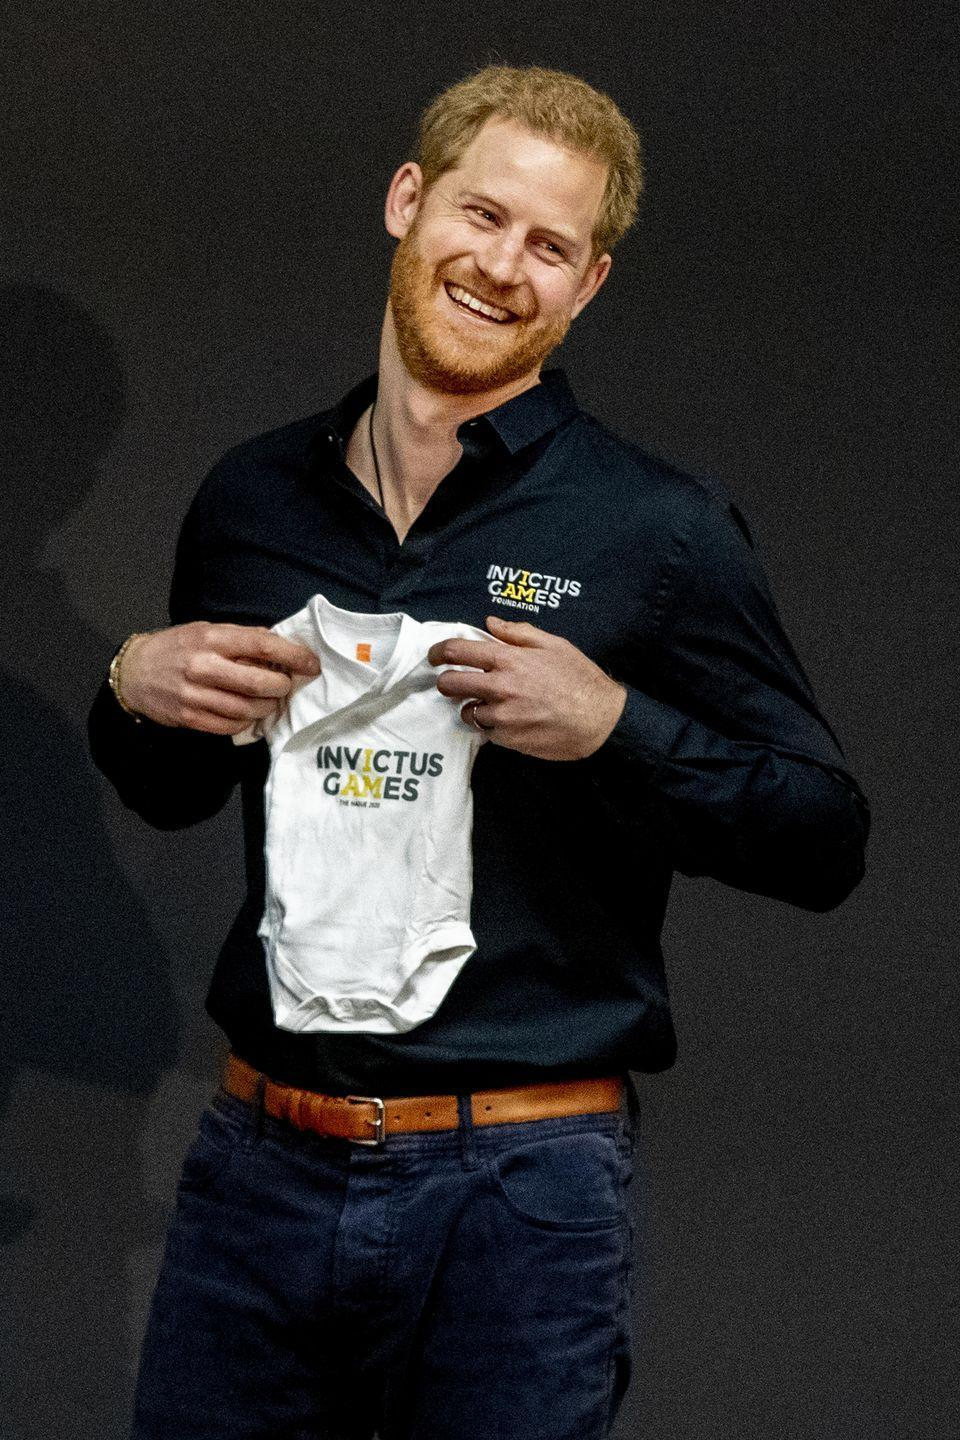 <p>During the Invictus Games launch in The Hague, Netherlands, Harry is presented with an Invictus Games outfit for baby Archie. </p>